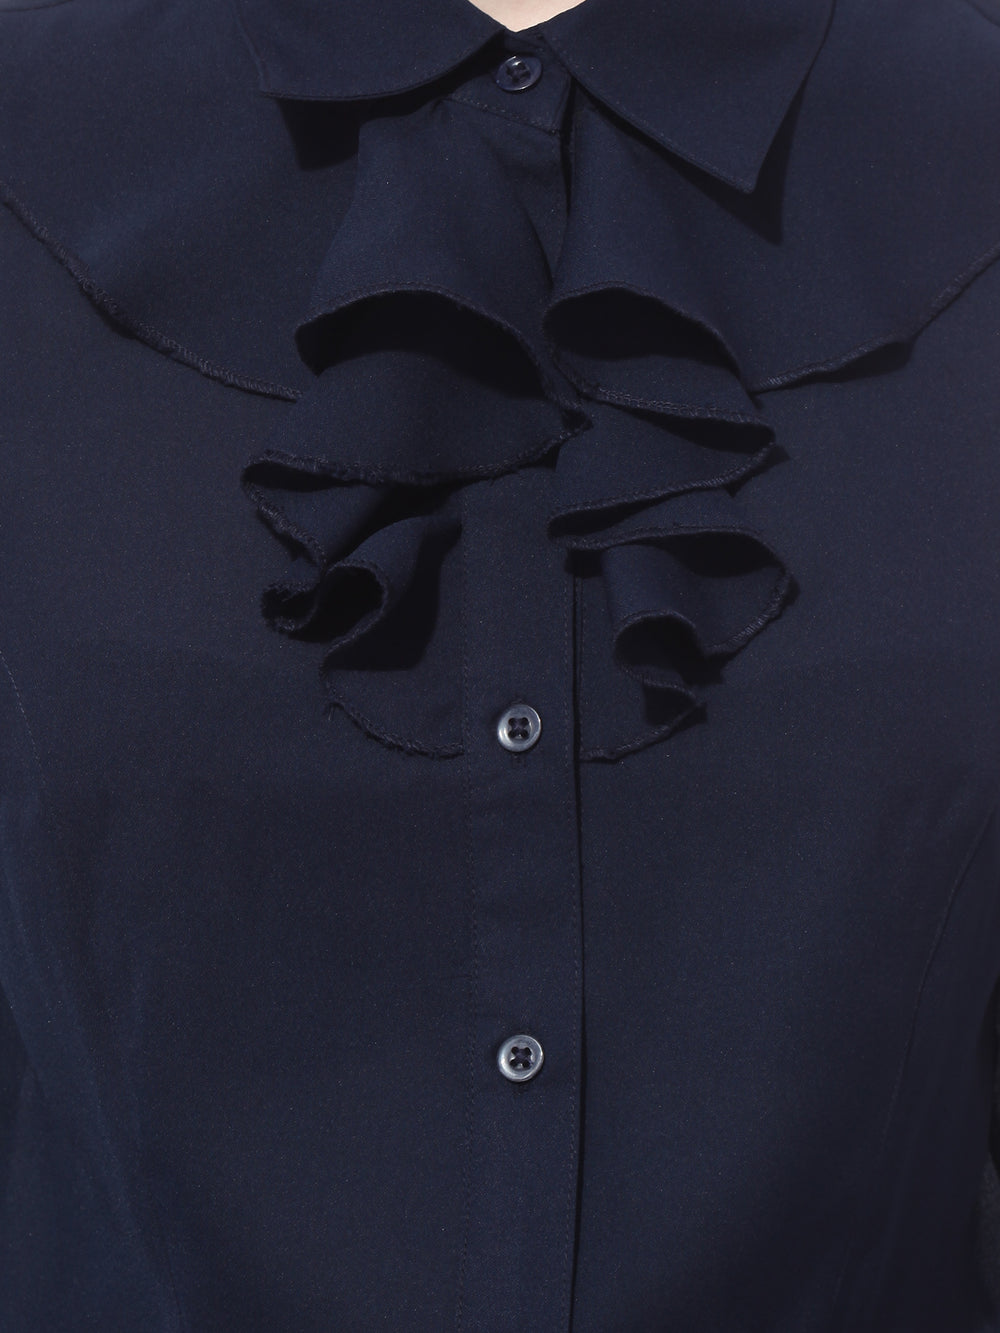 Besiva Navy Standard Fit Formal Shirt